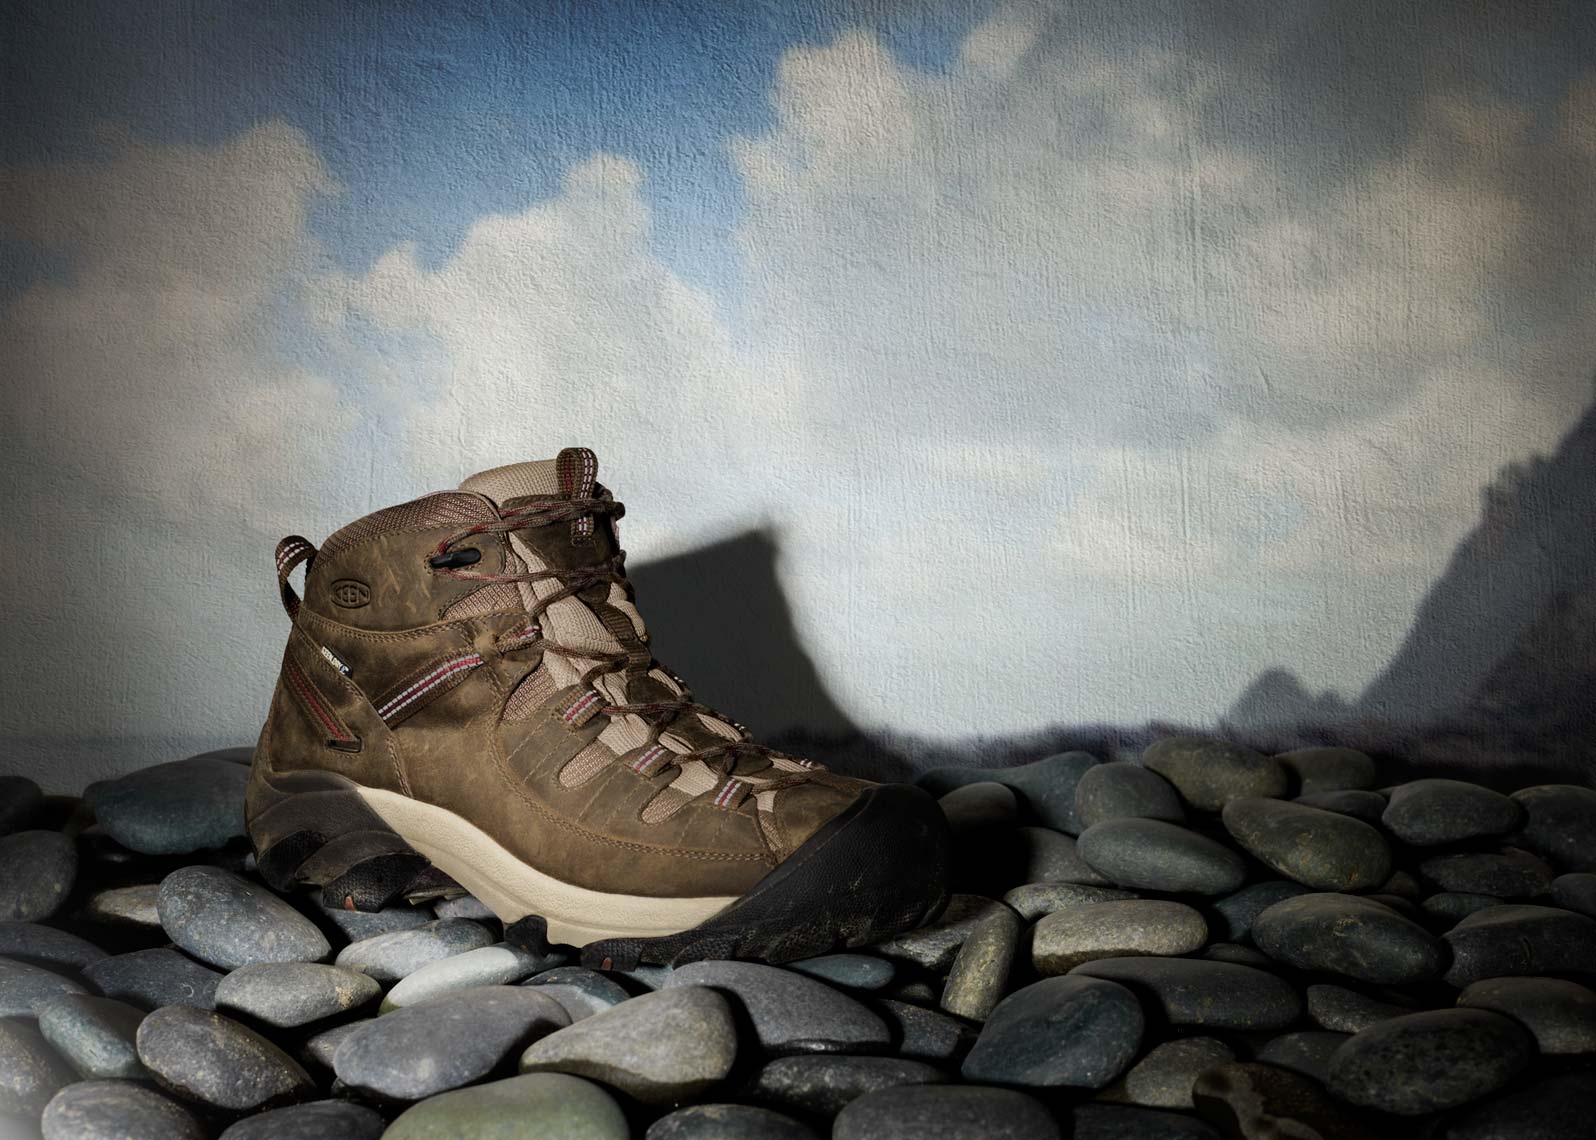 keen hiking boot on a rocky shoreline blue brown